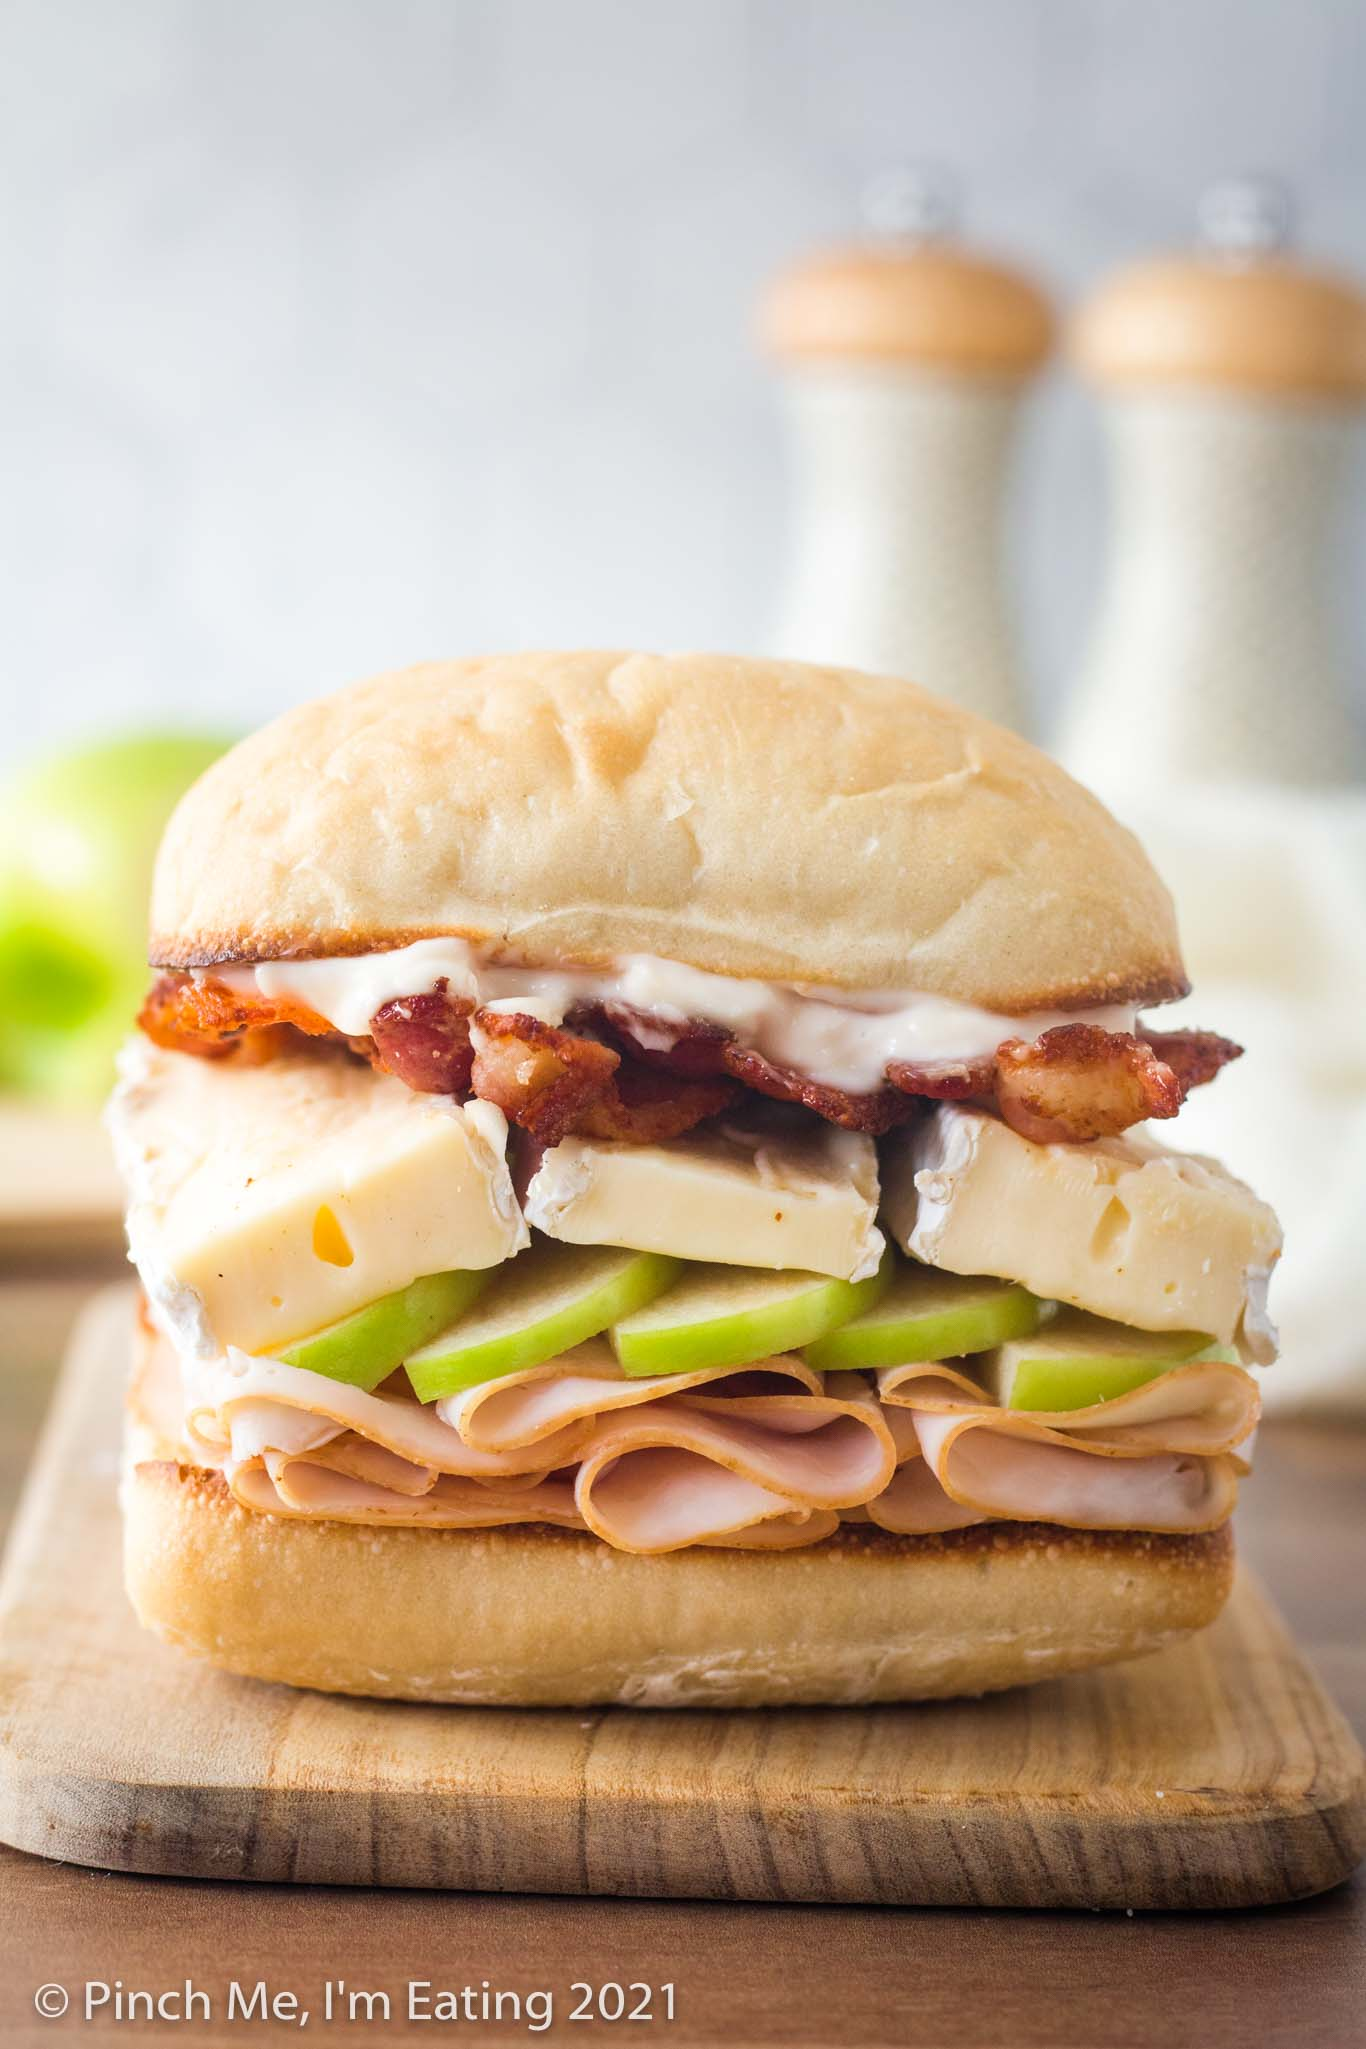 Smoked Turkey, Apple, and Brie Sandwich with Bacon